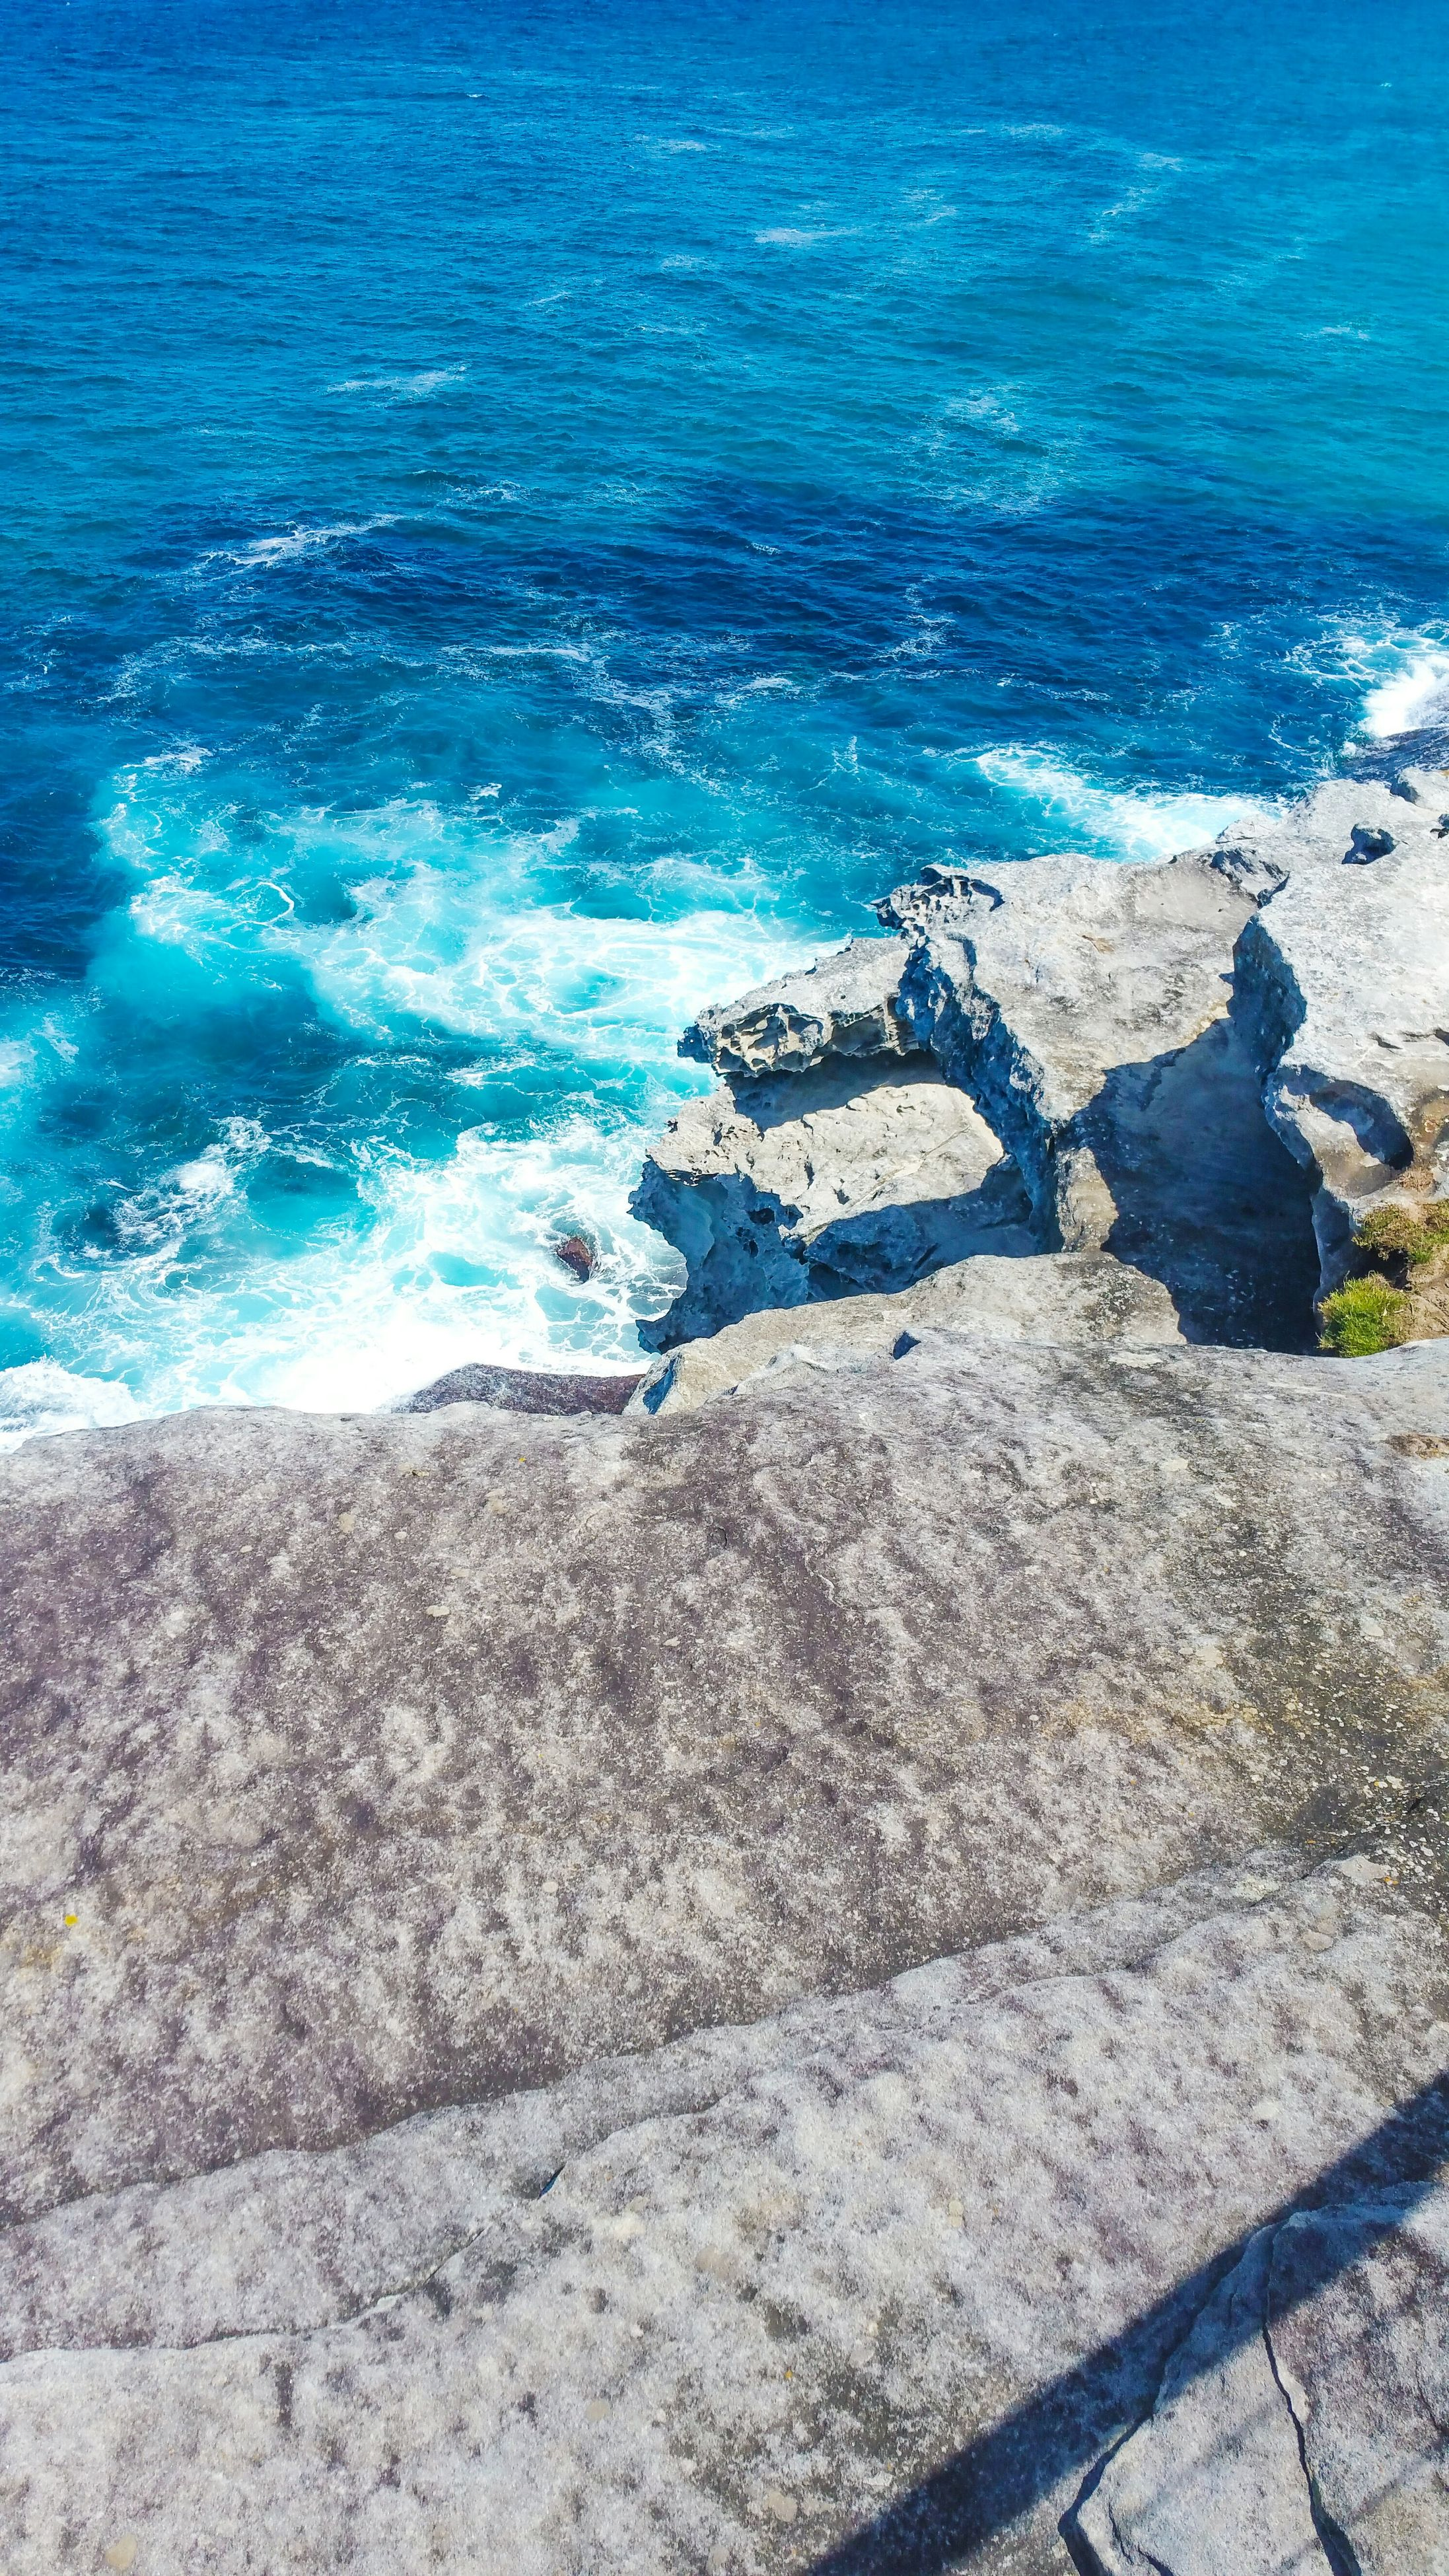 sea, water, blue, high angle view, tranquility, beauty in nature, scenics, tranquil scene, nature, beach, shore, horizon over water, coastline, wave, rock - object, surf, idyllic, day, rock formation, no people